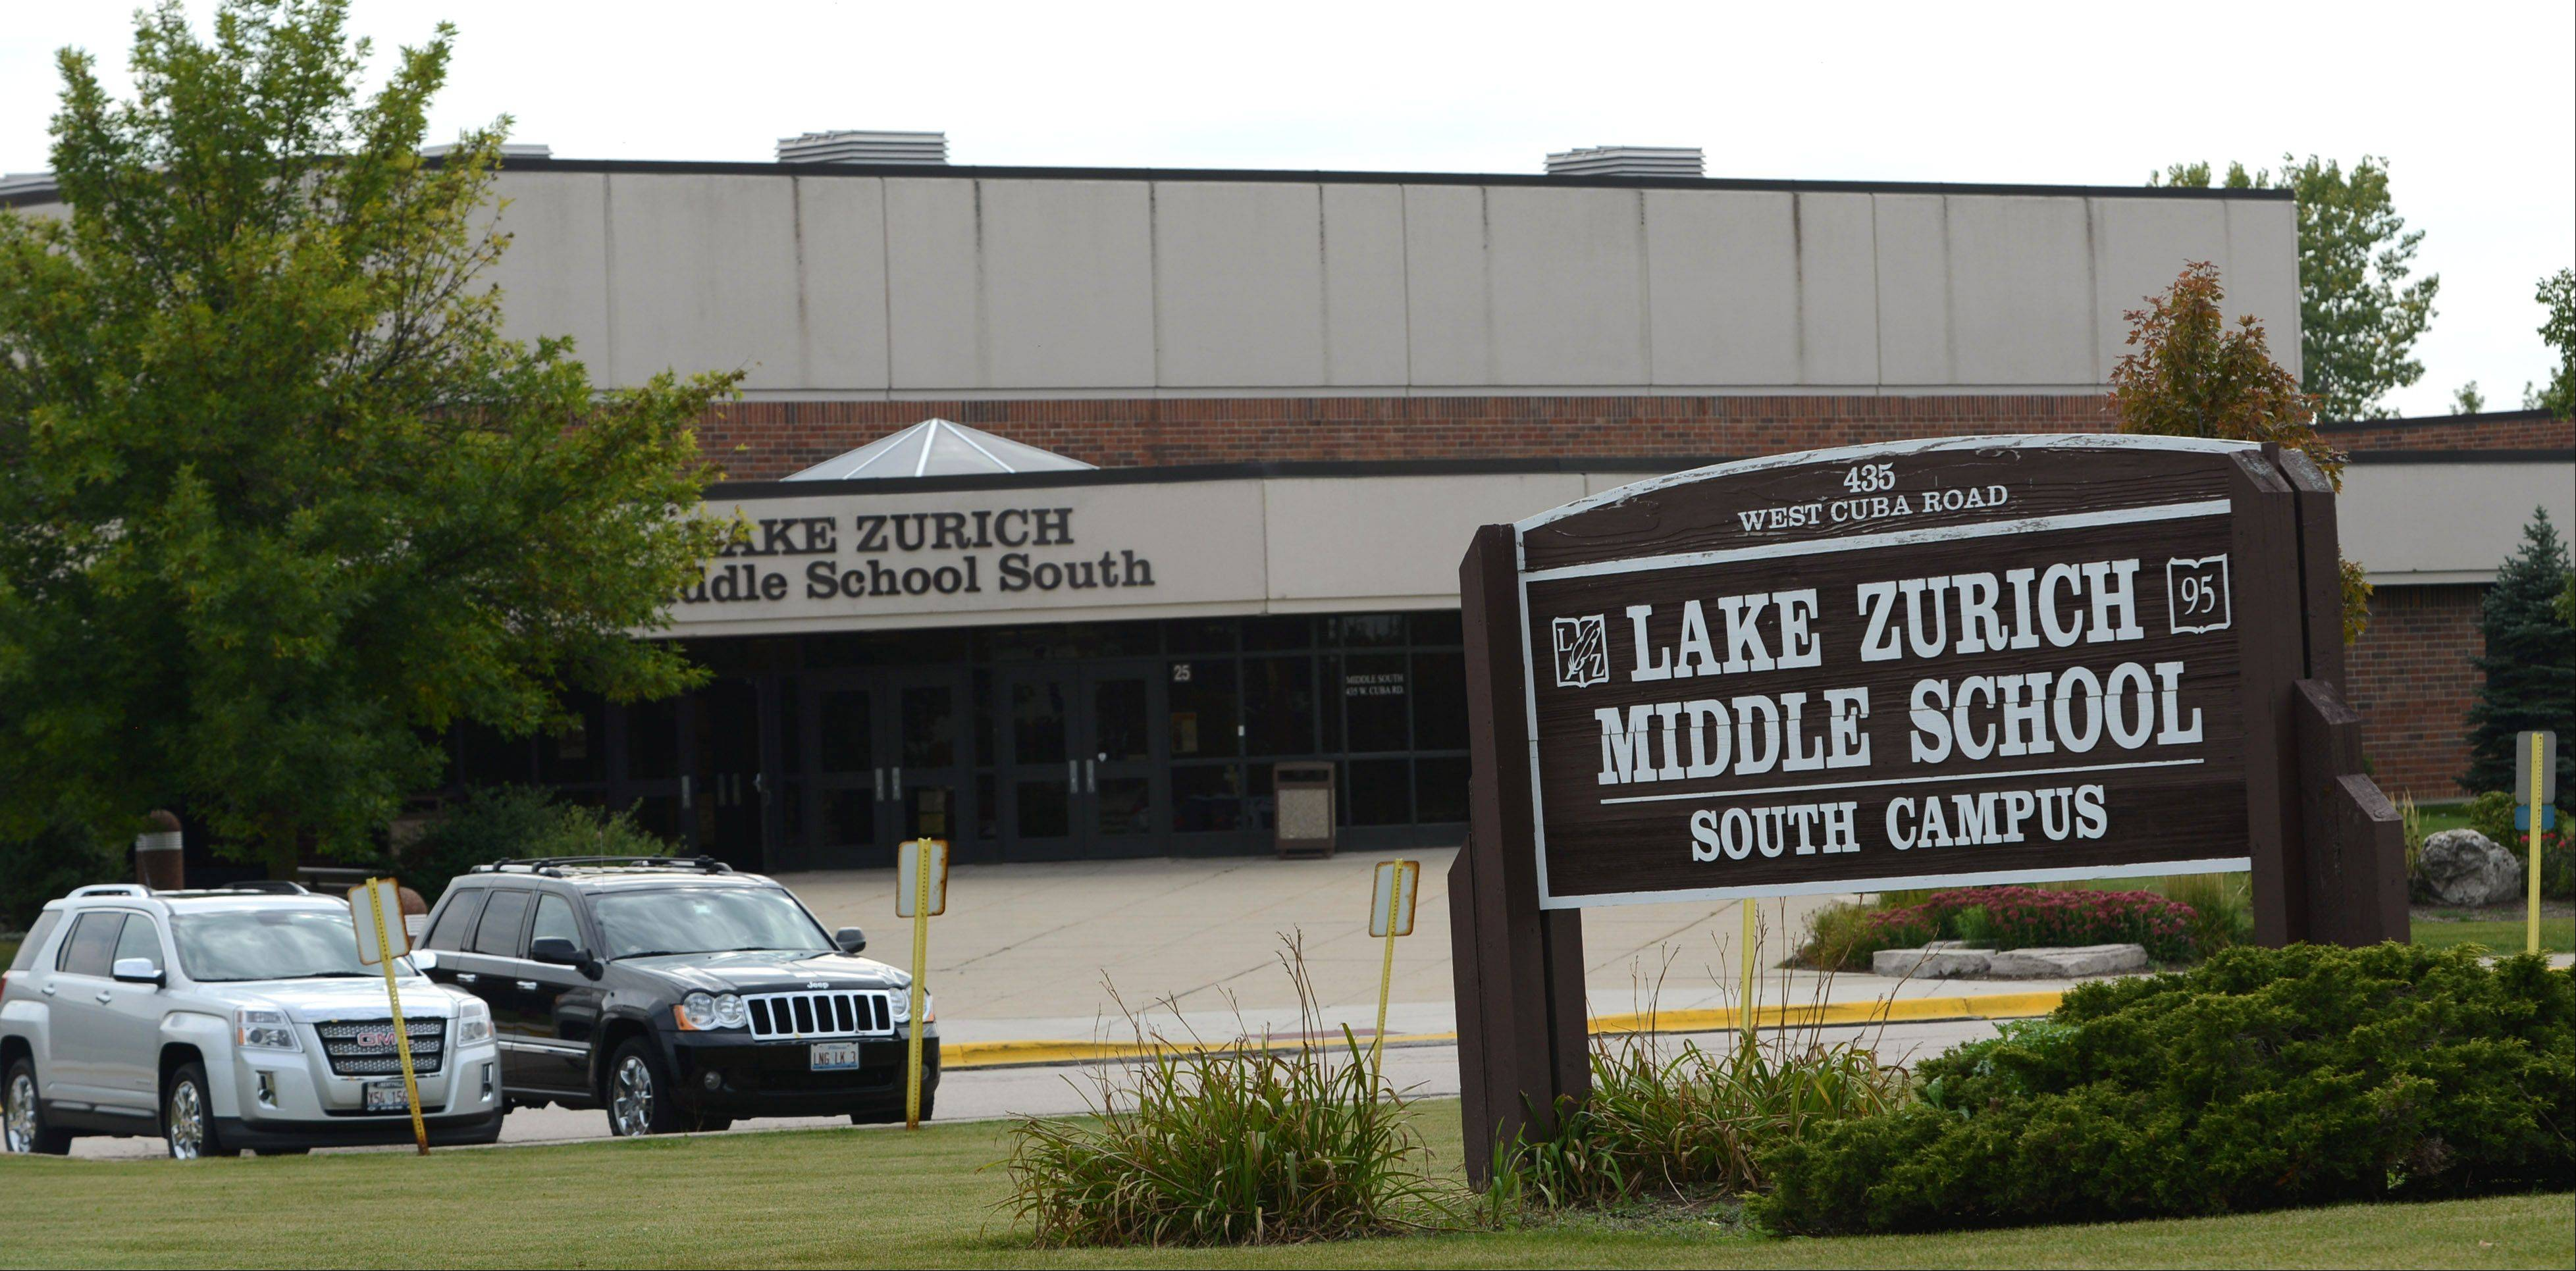 Lake Zurich Unit District 95 has five schools without central air conditioning. Among the buildings without air conditioning is Lake Zurich Middle School South.